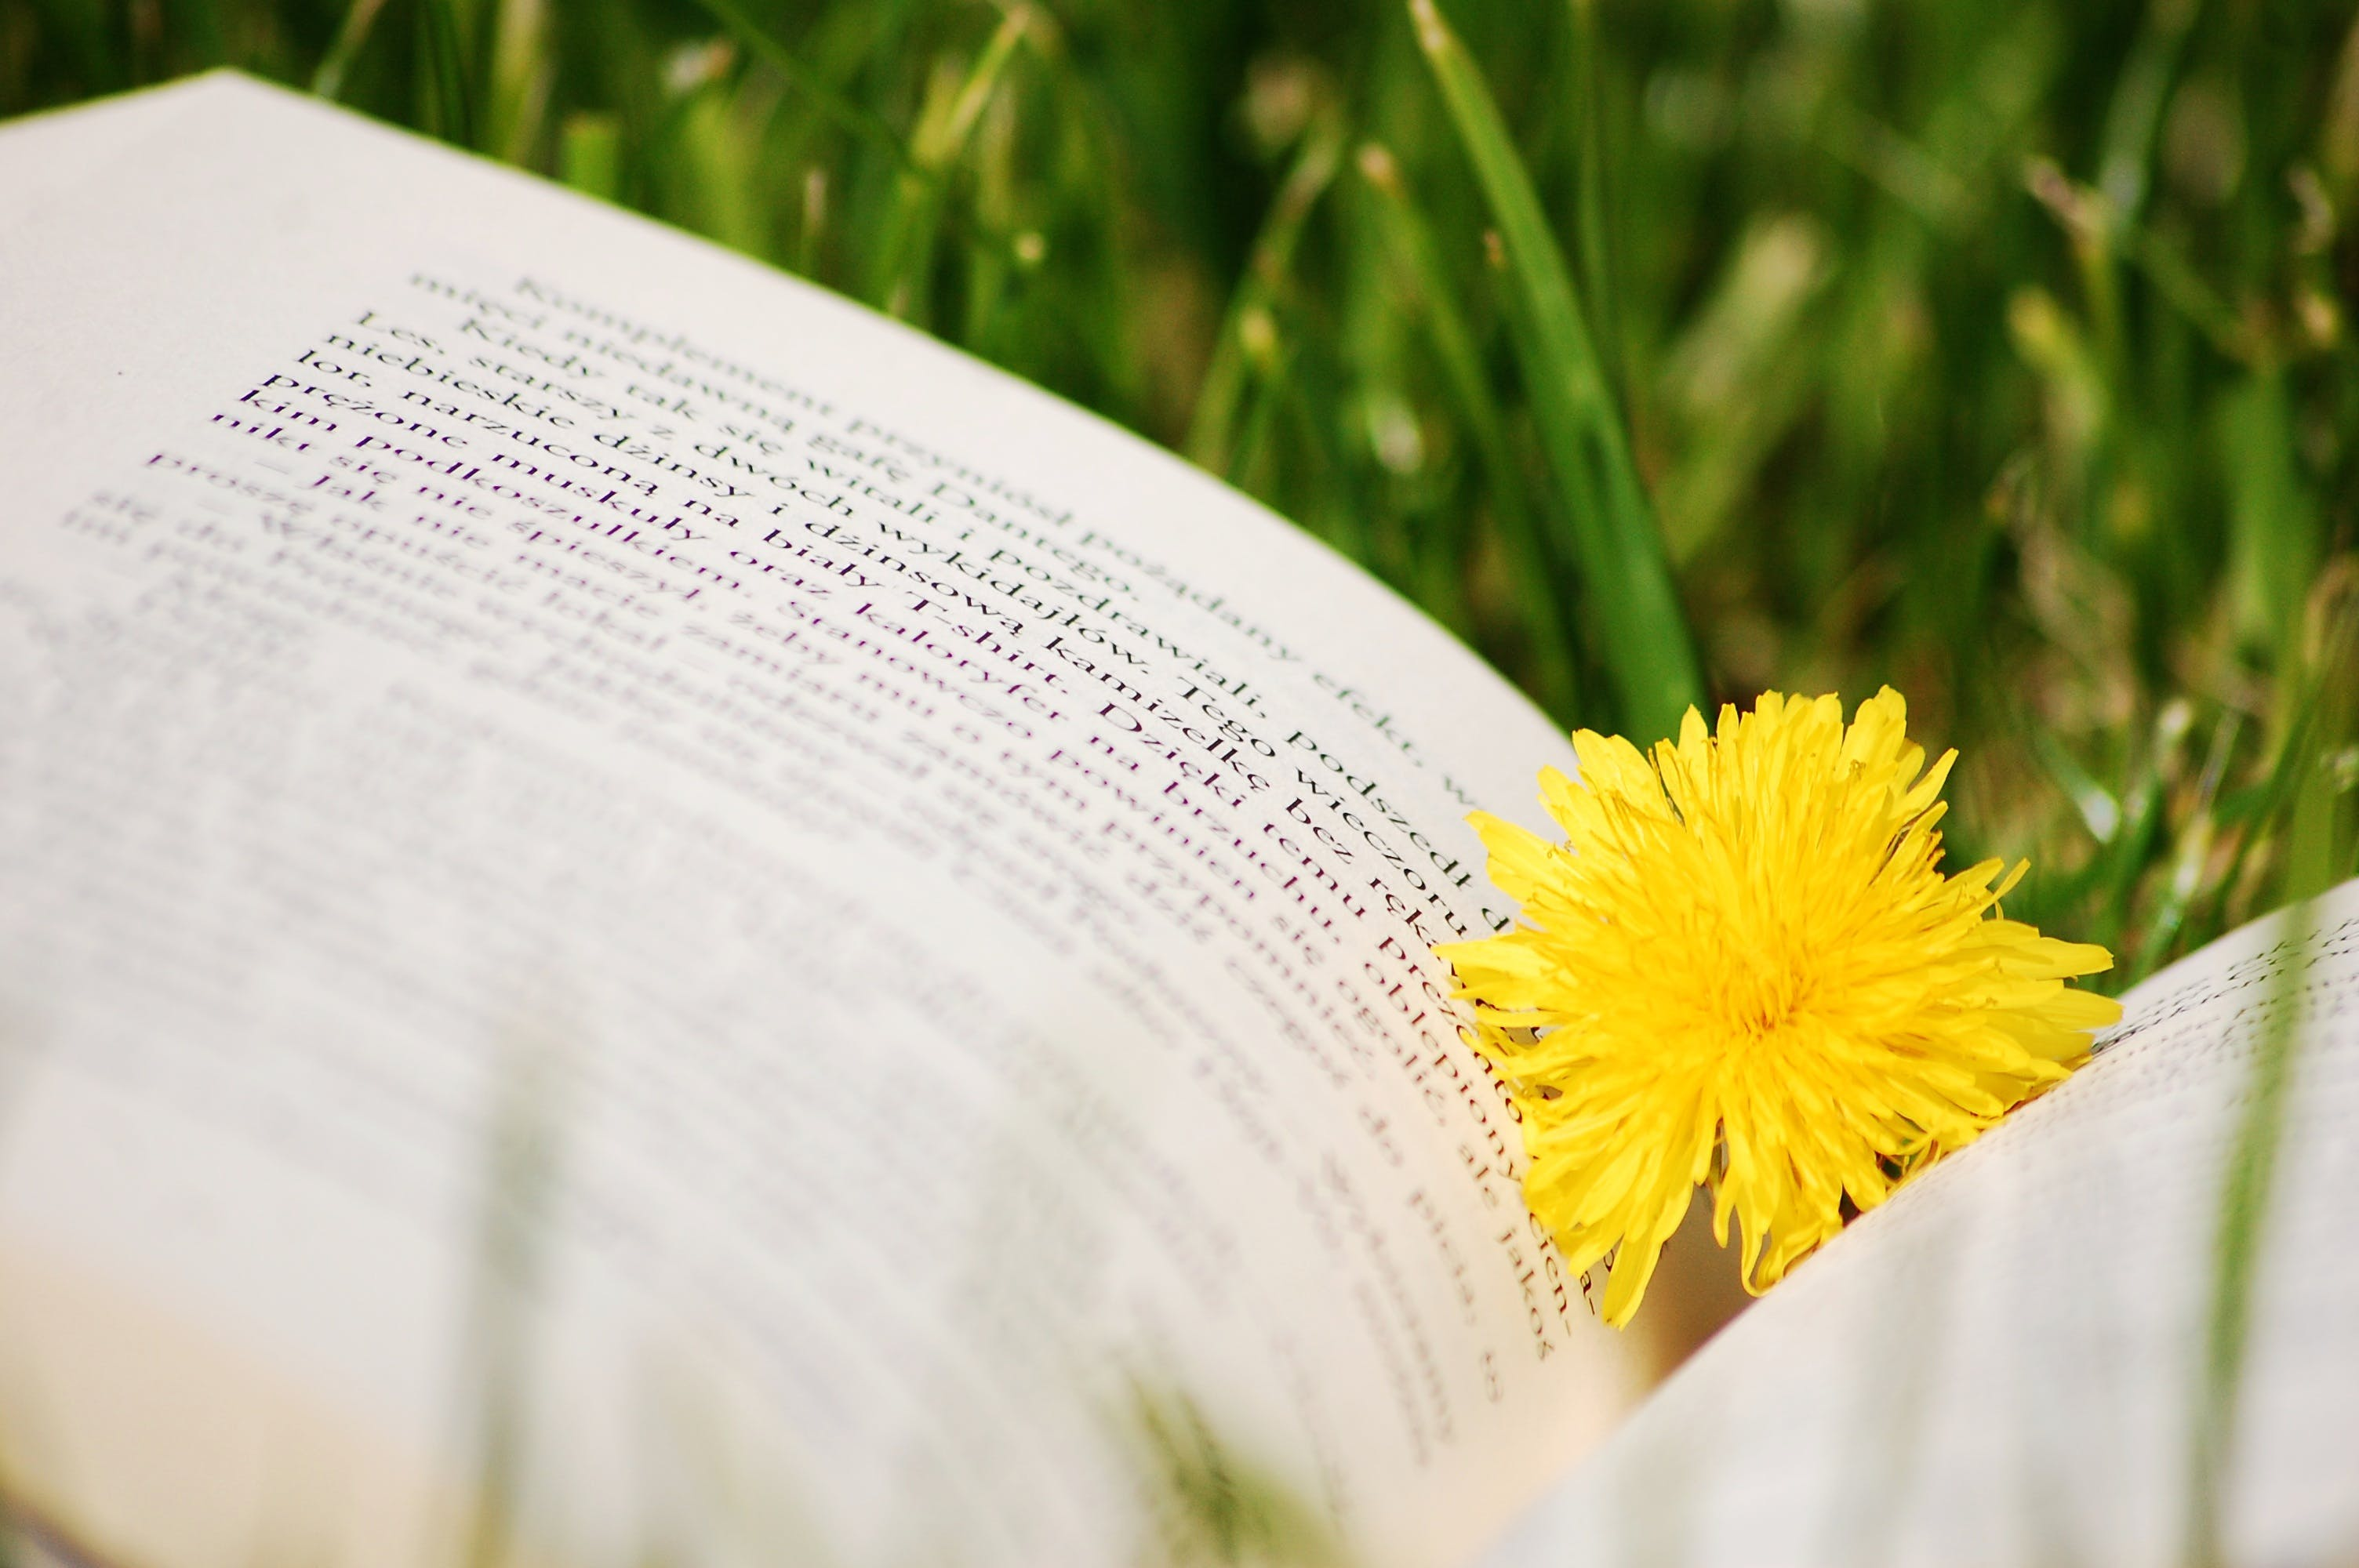 Bokeh Photography of Yellow Flower on Top of White Book